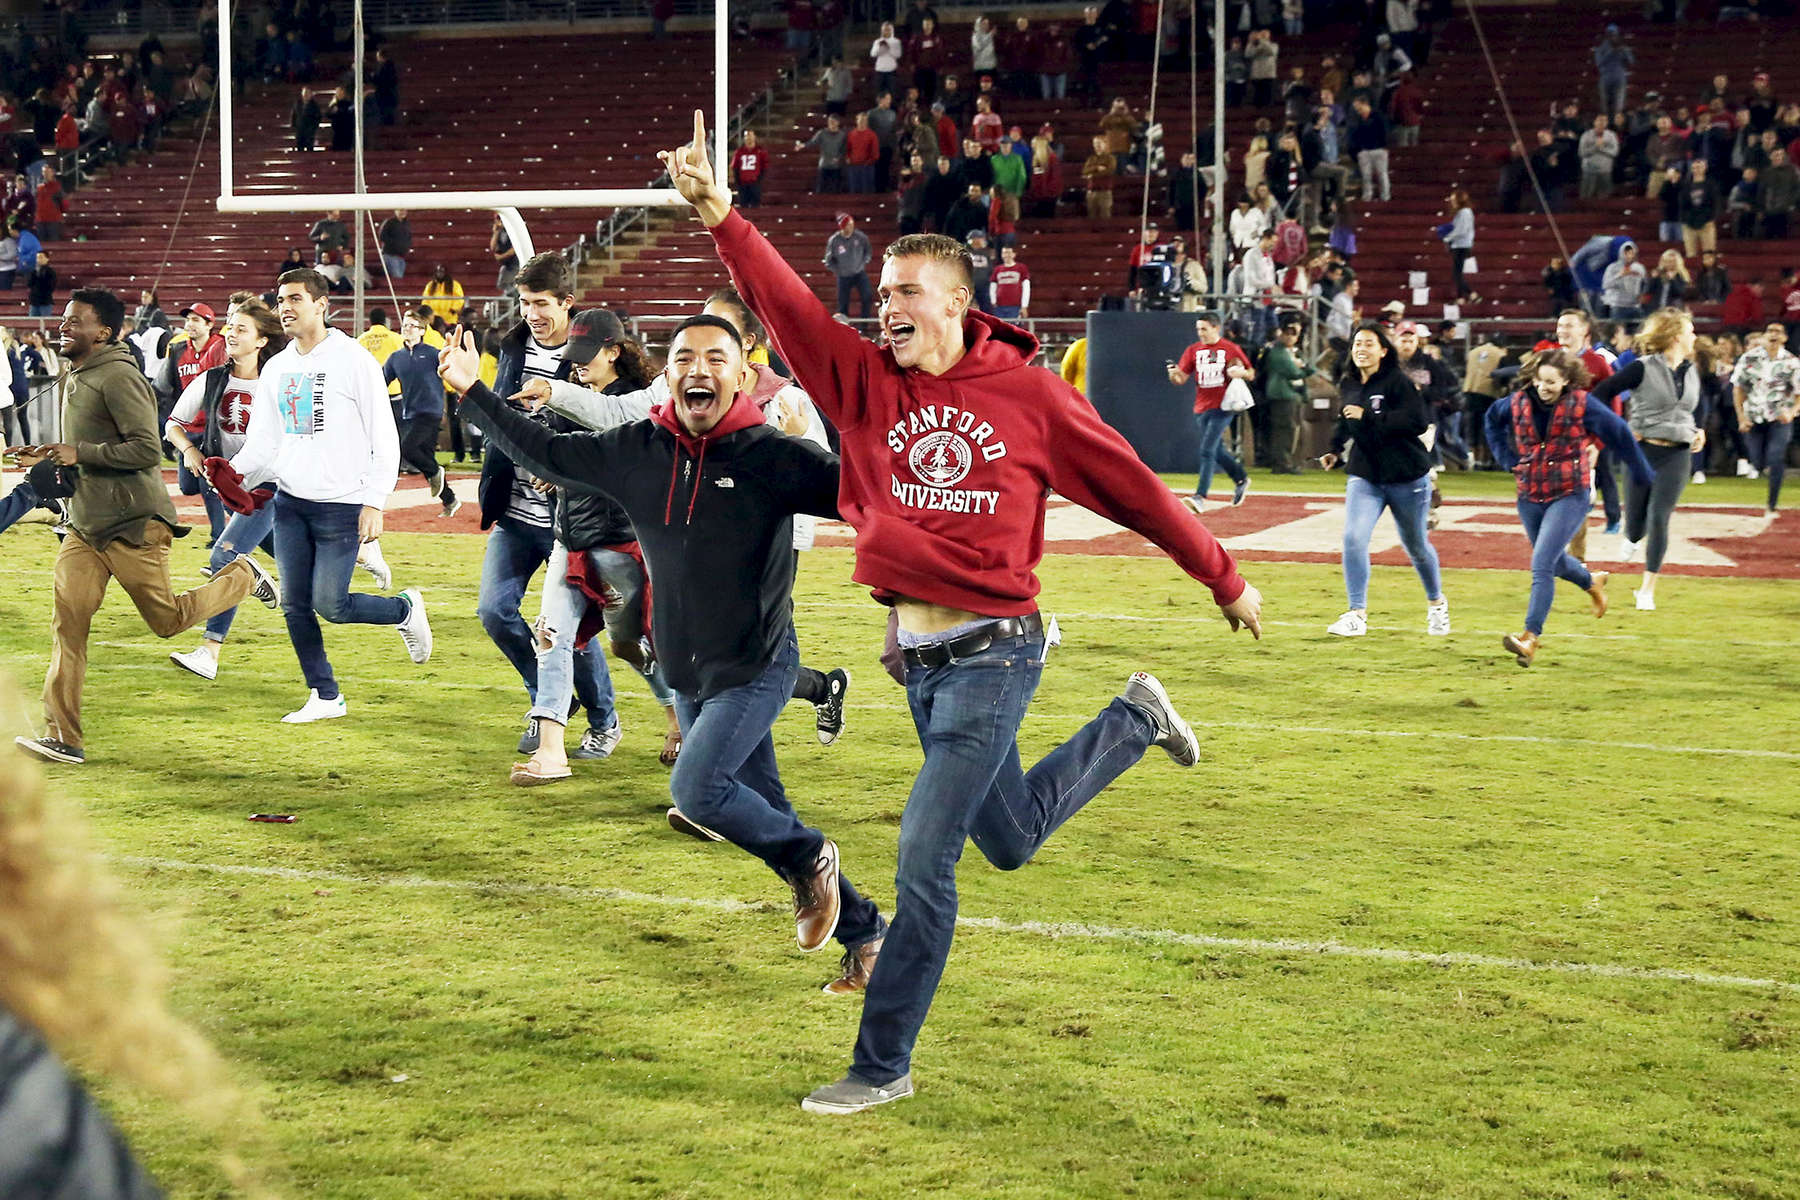 stanford_football_MS2_6965